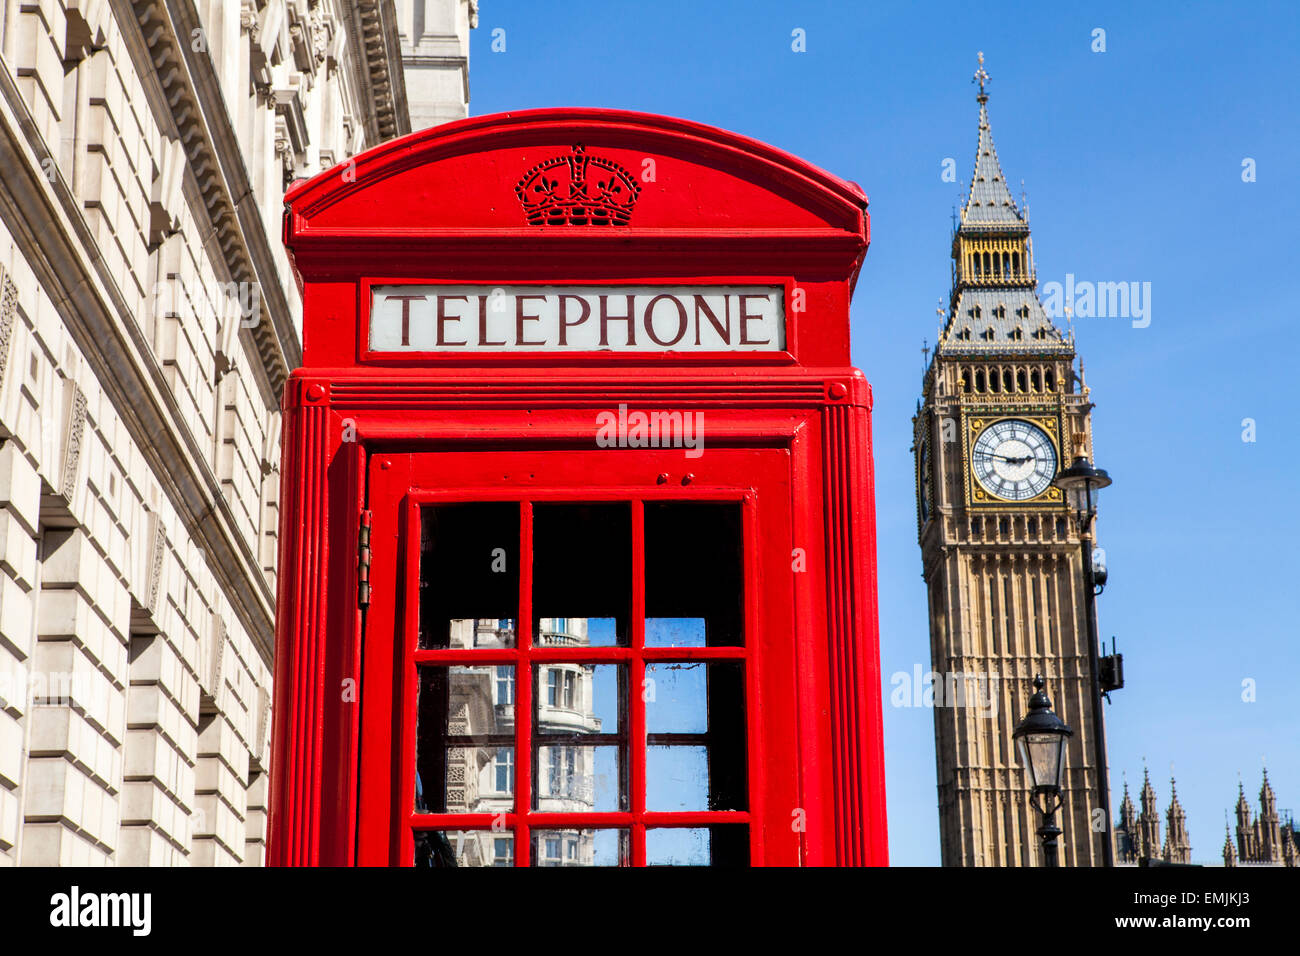 An iconic red Telephone Box with Big Ben in the background in London. - Stock Image